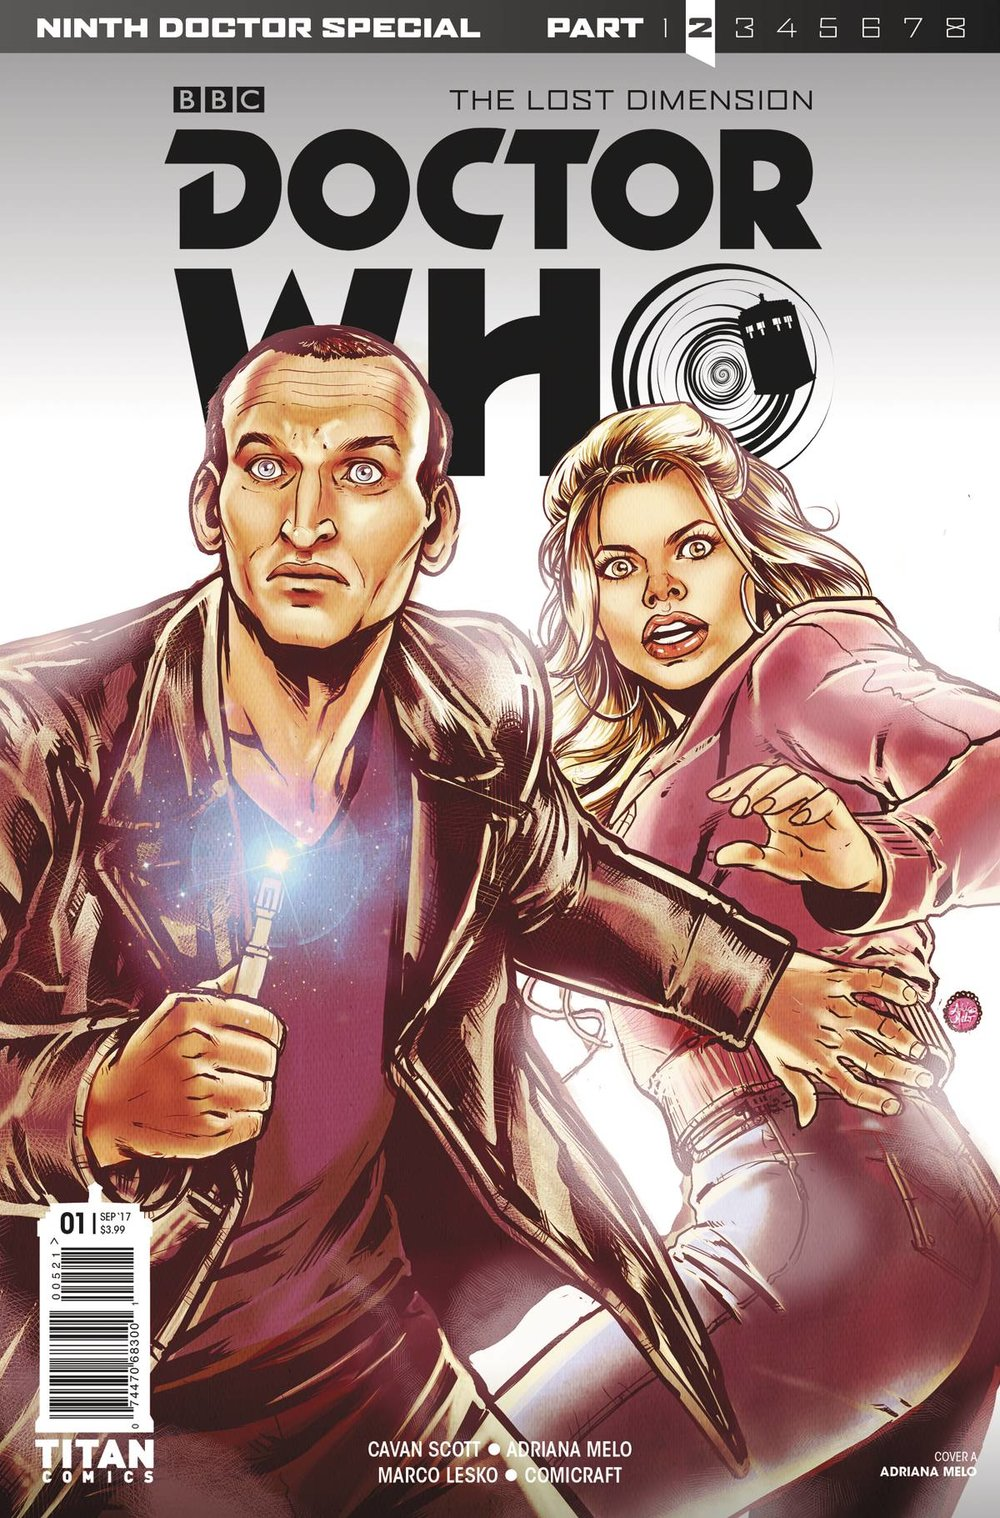 DOCTOR WHO 9TH DOCTOR YEAR TWO 1 CVR A MELO.jpg